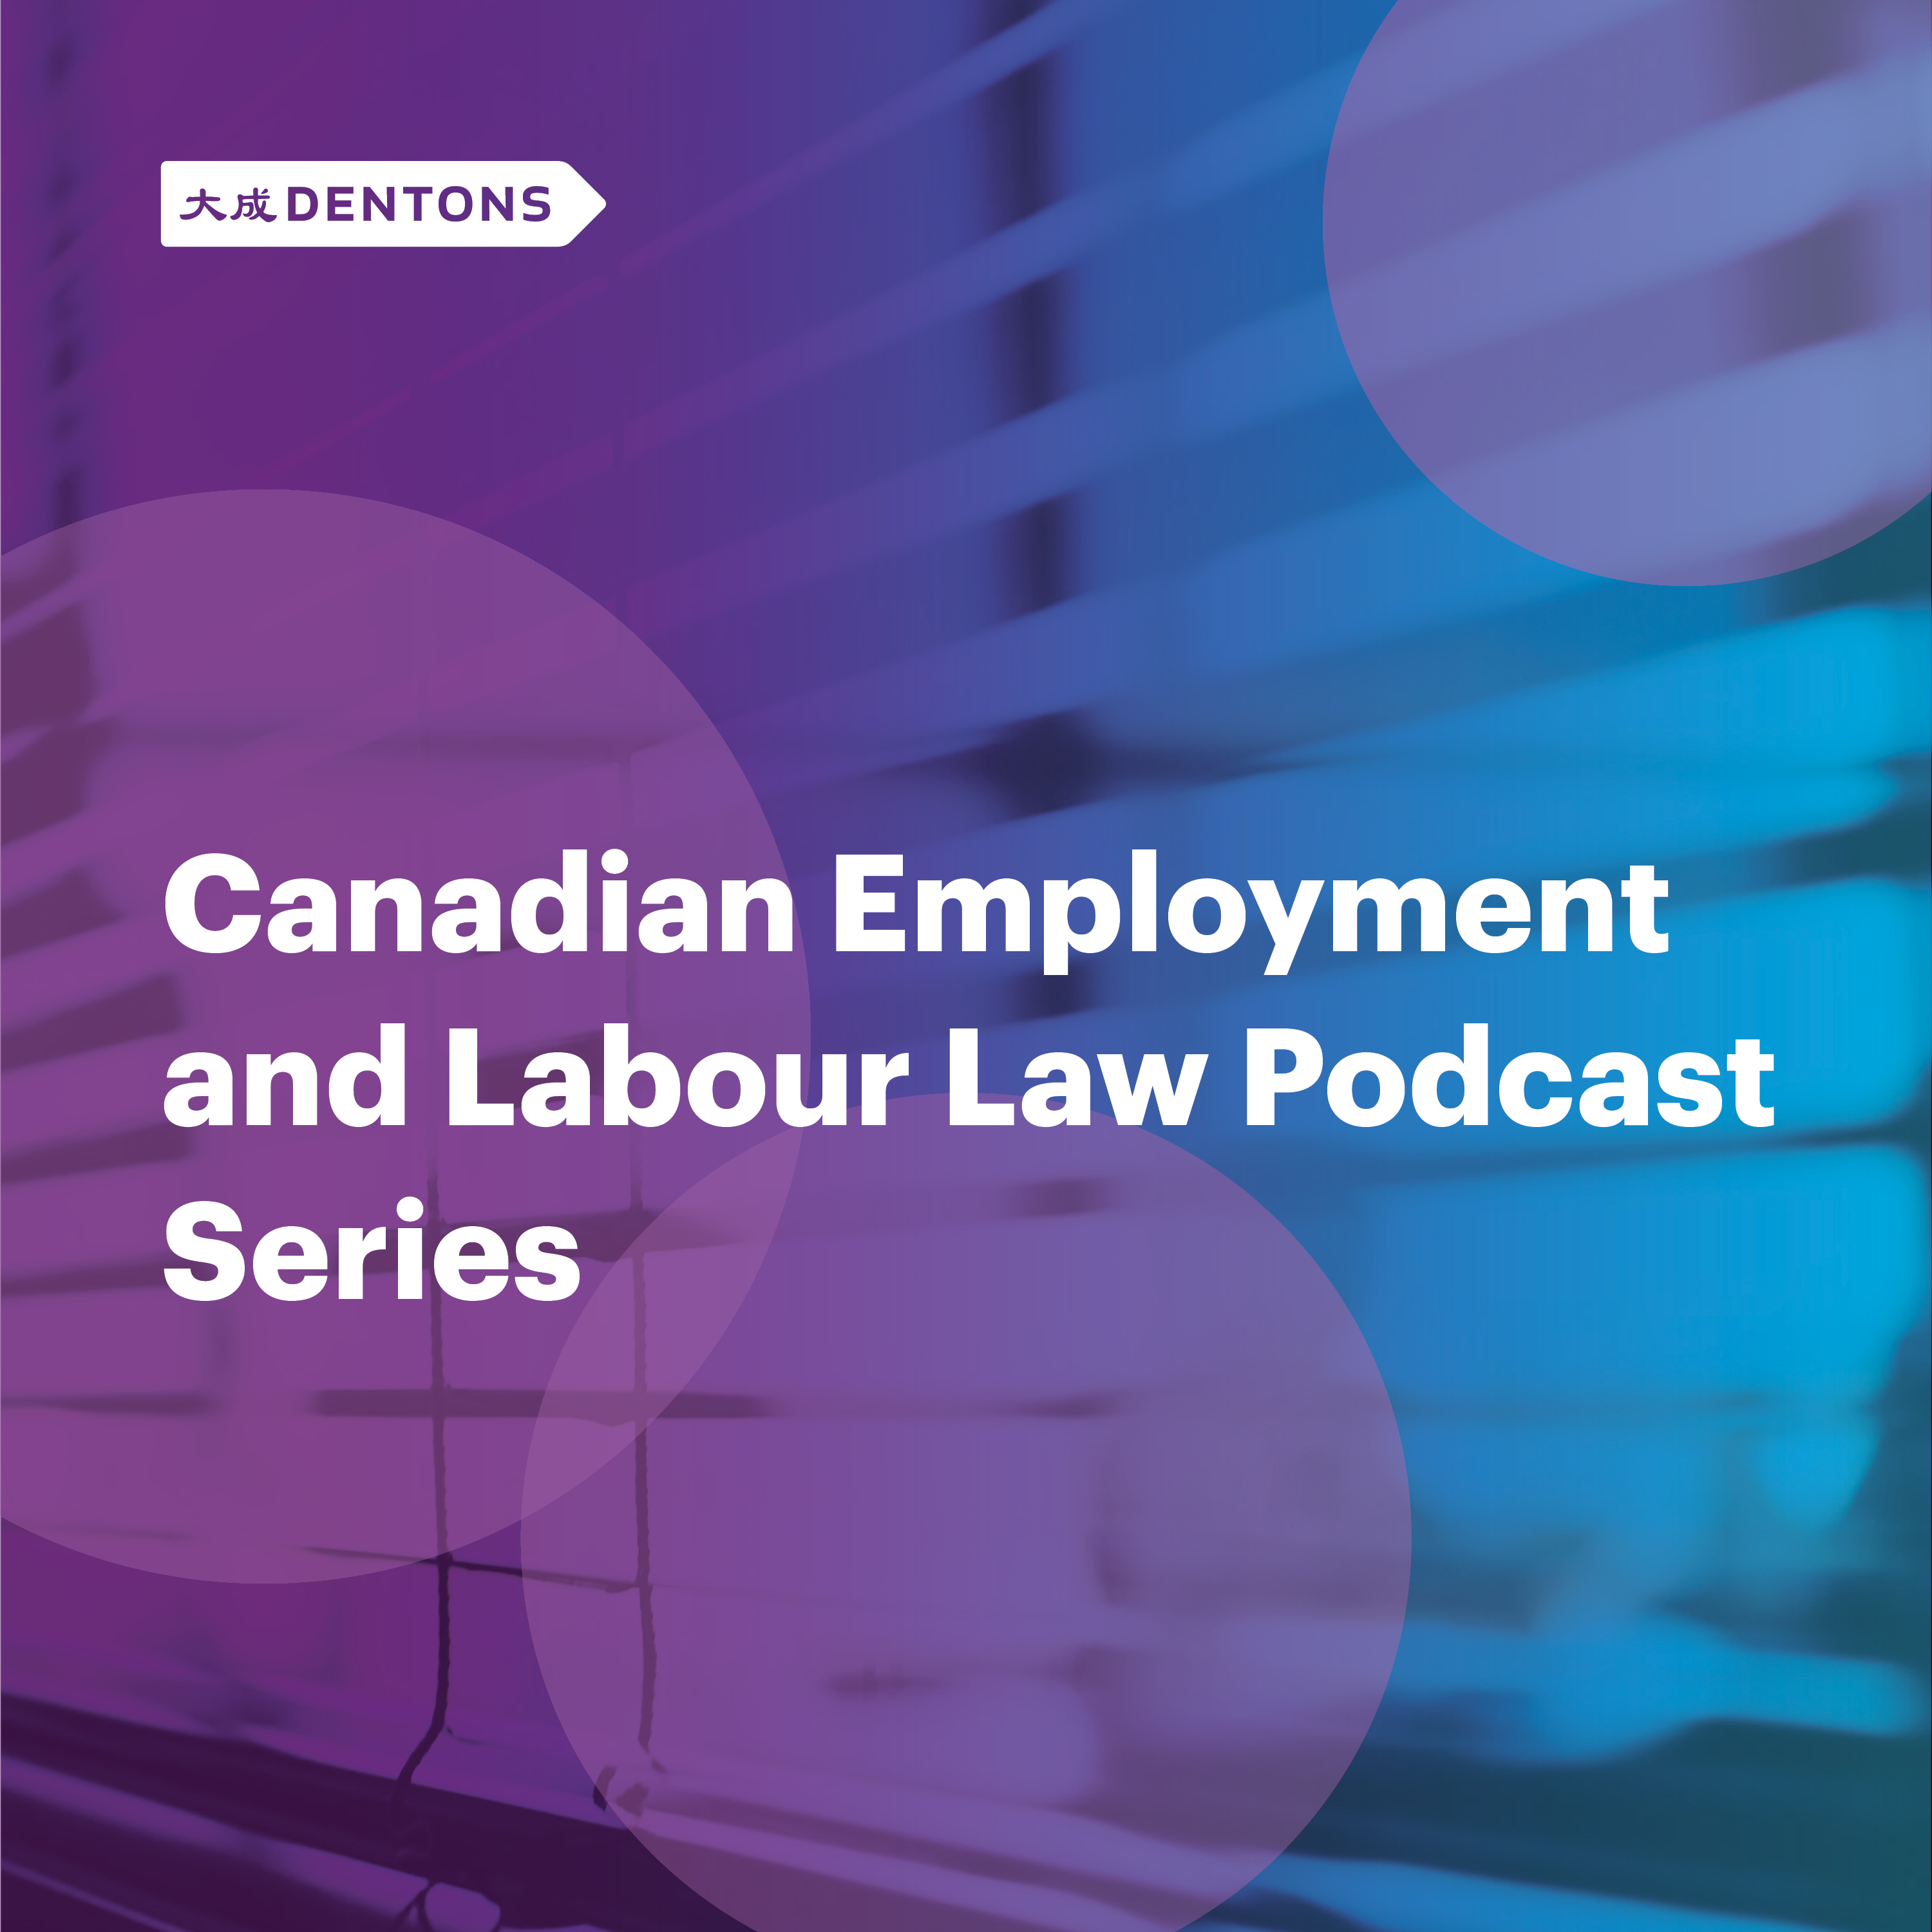 Artwork for podcast Dentons Canadian Employment and Labour Law Podcast